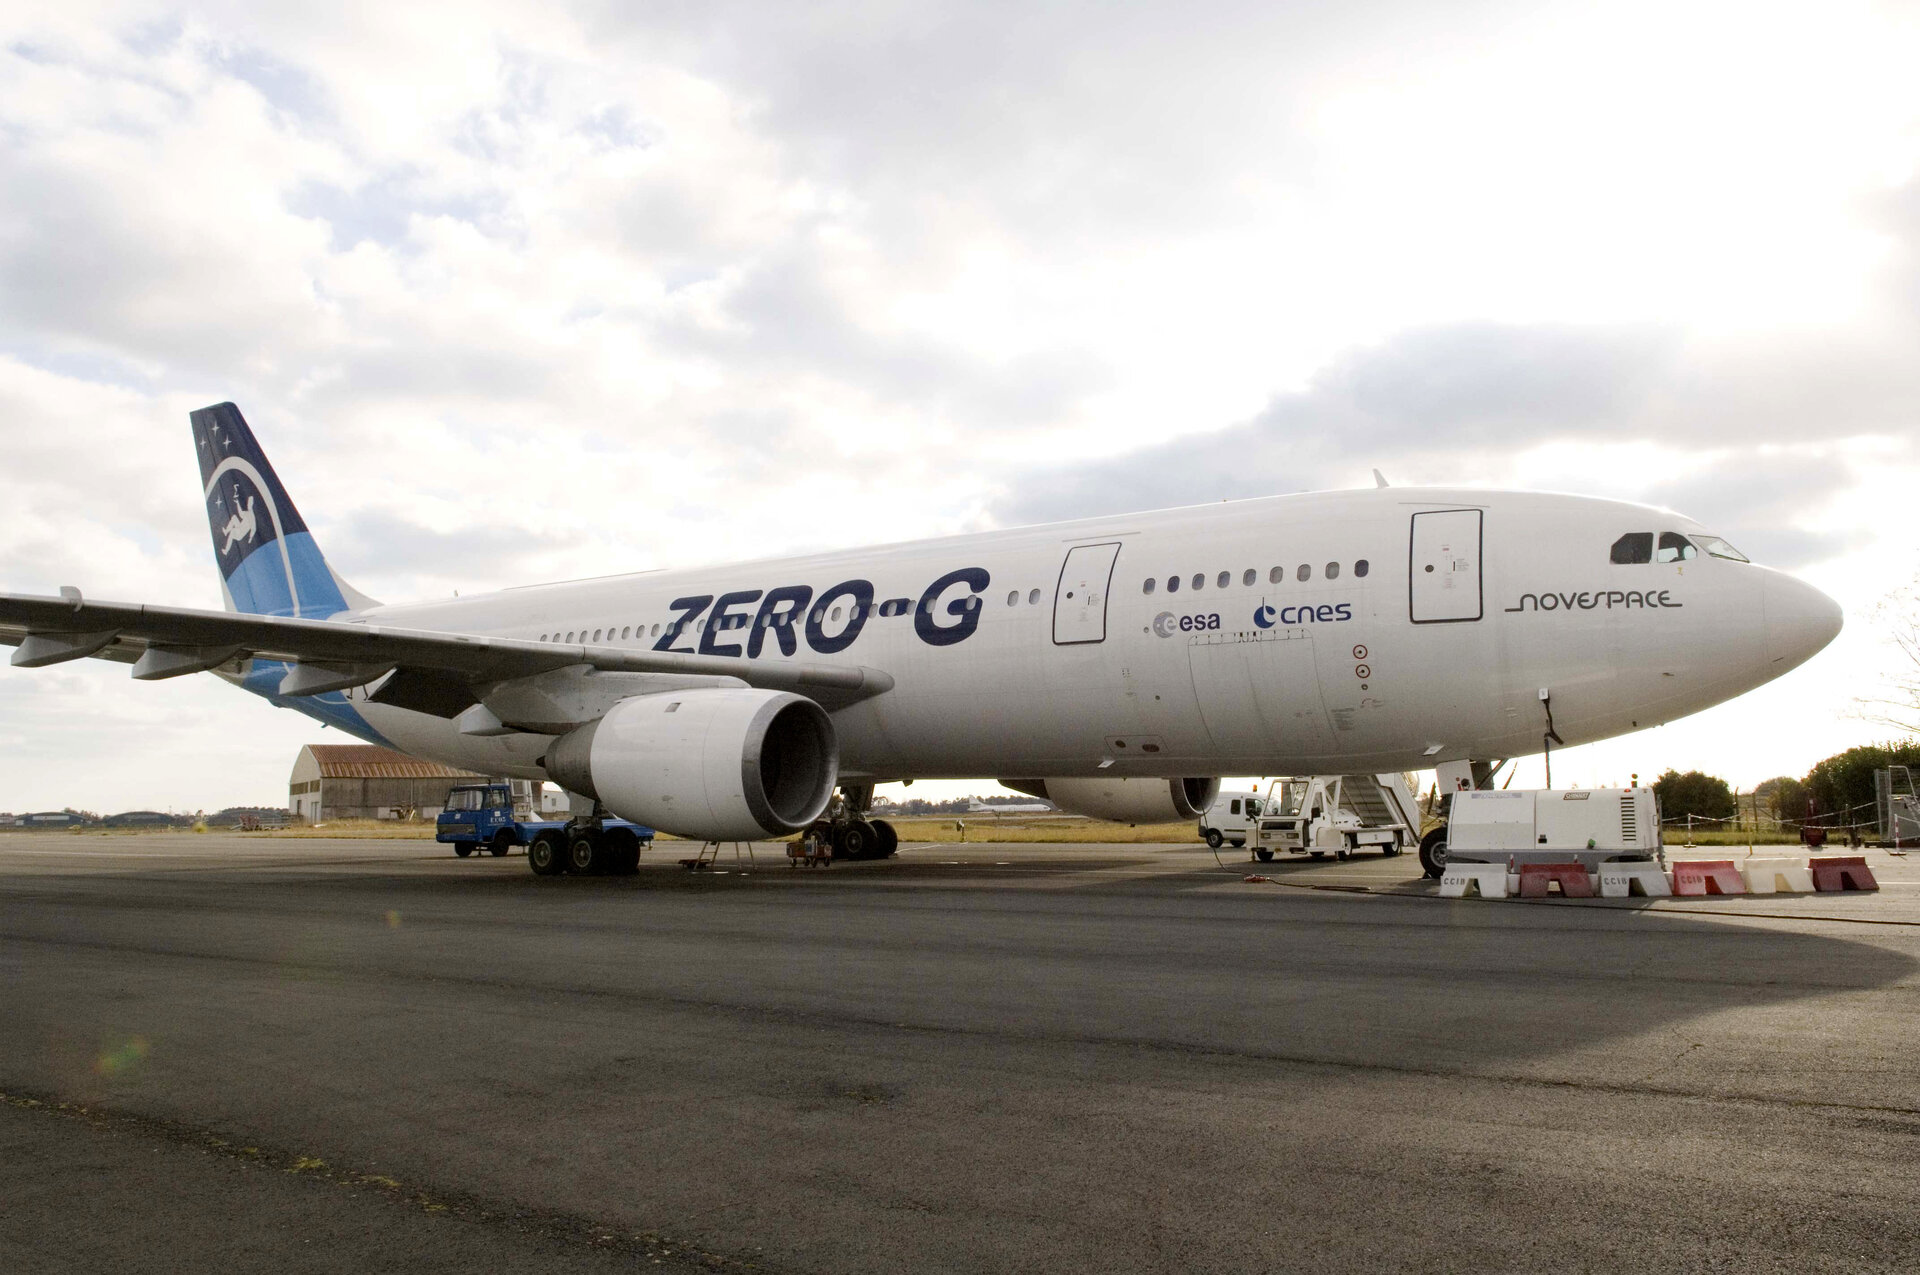 'Zero-g' Airbus A-300 used for parabolic flights